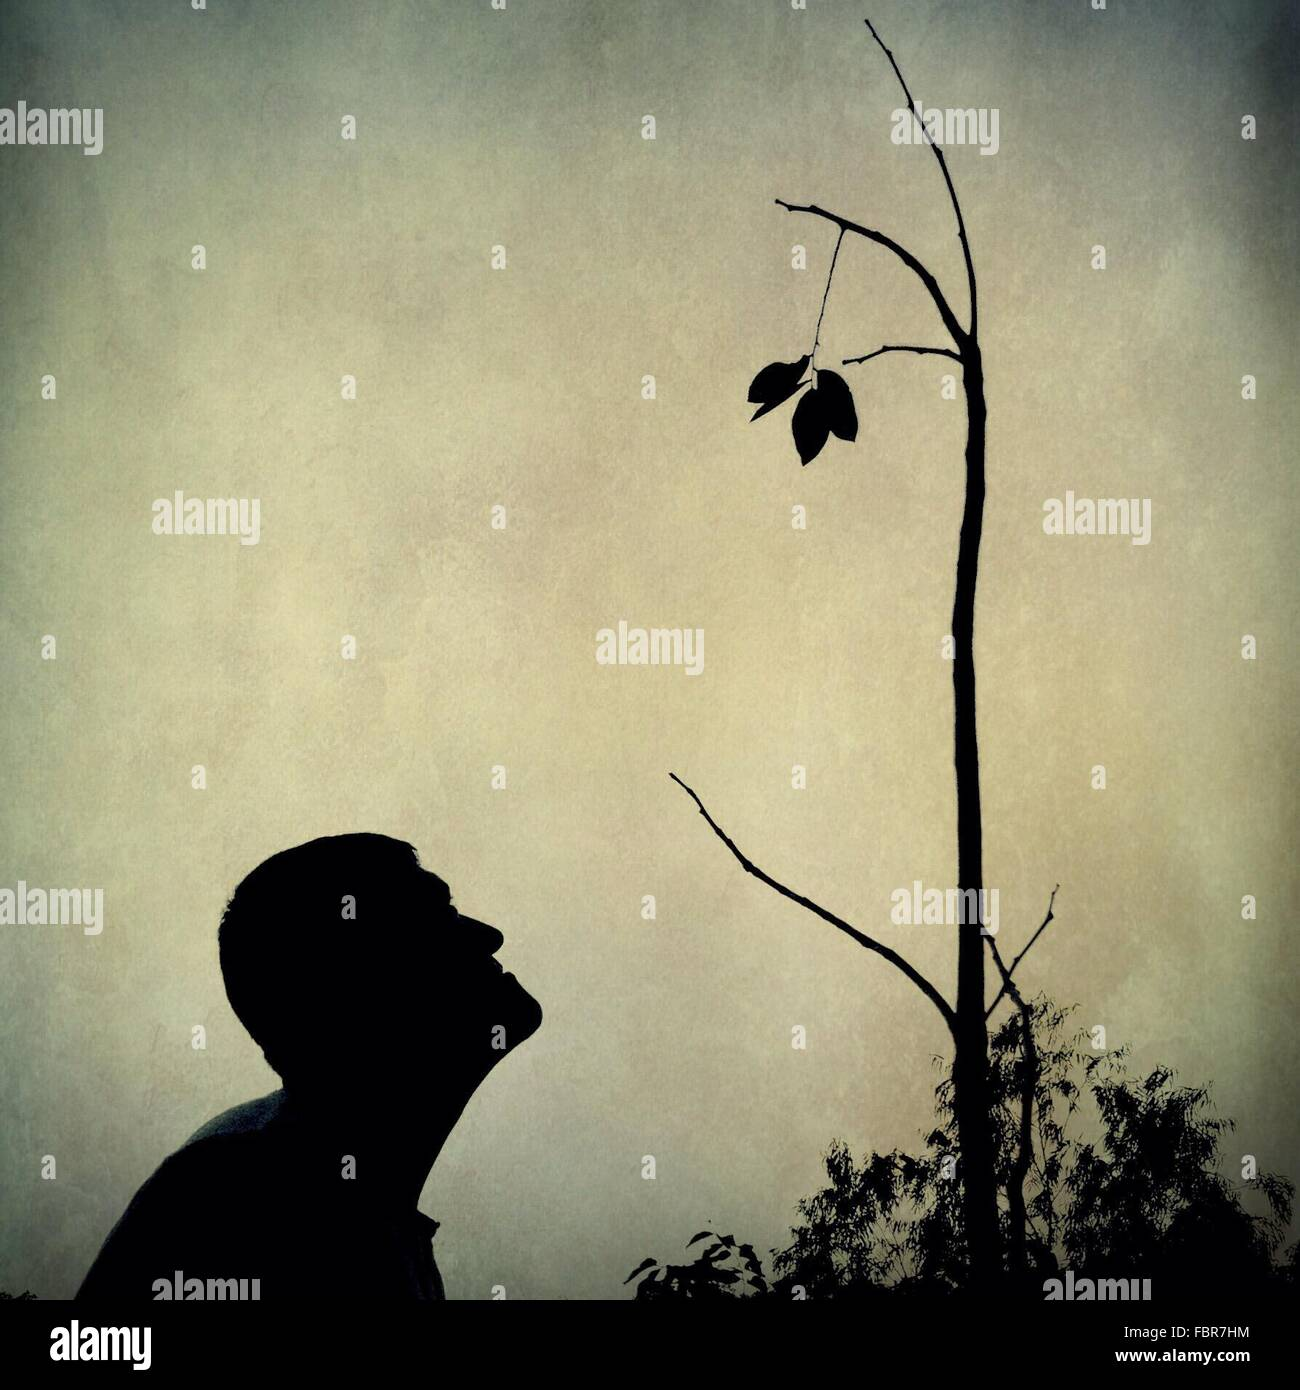 Silhouette Man Watching Leaves Against Sky - Stock Image